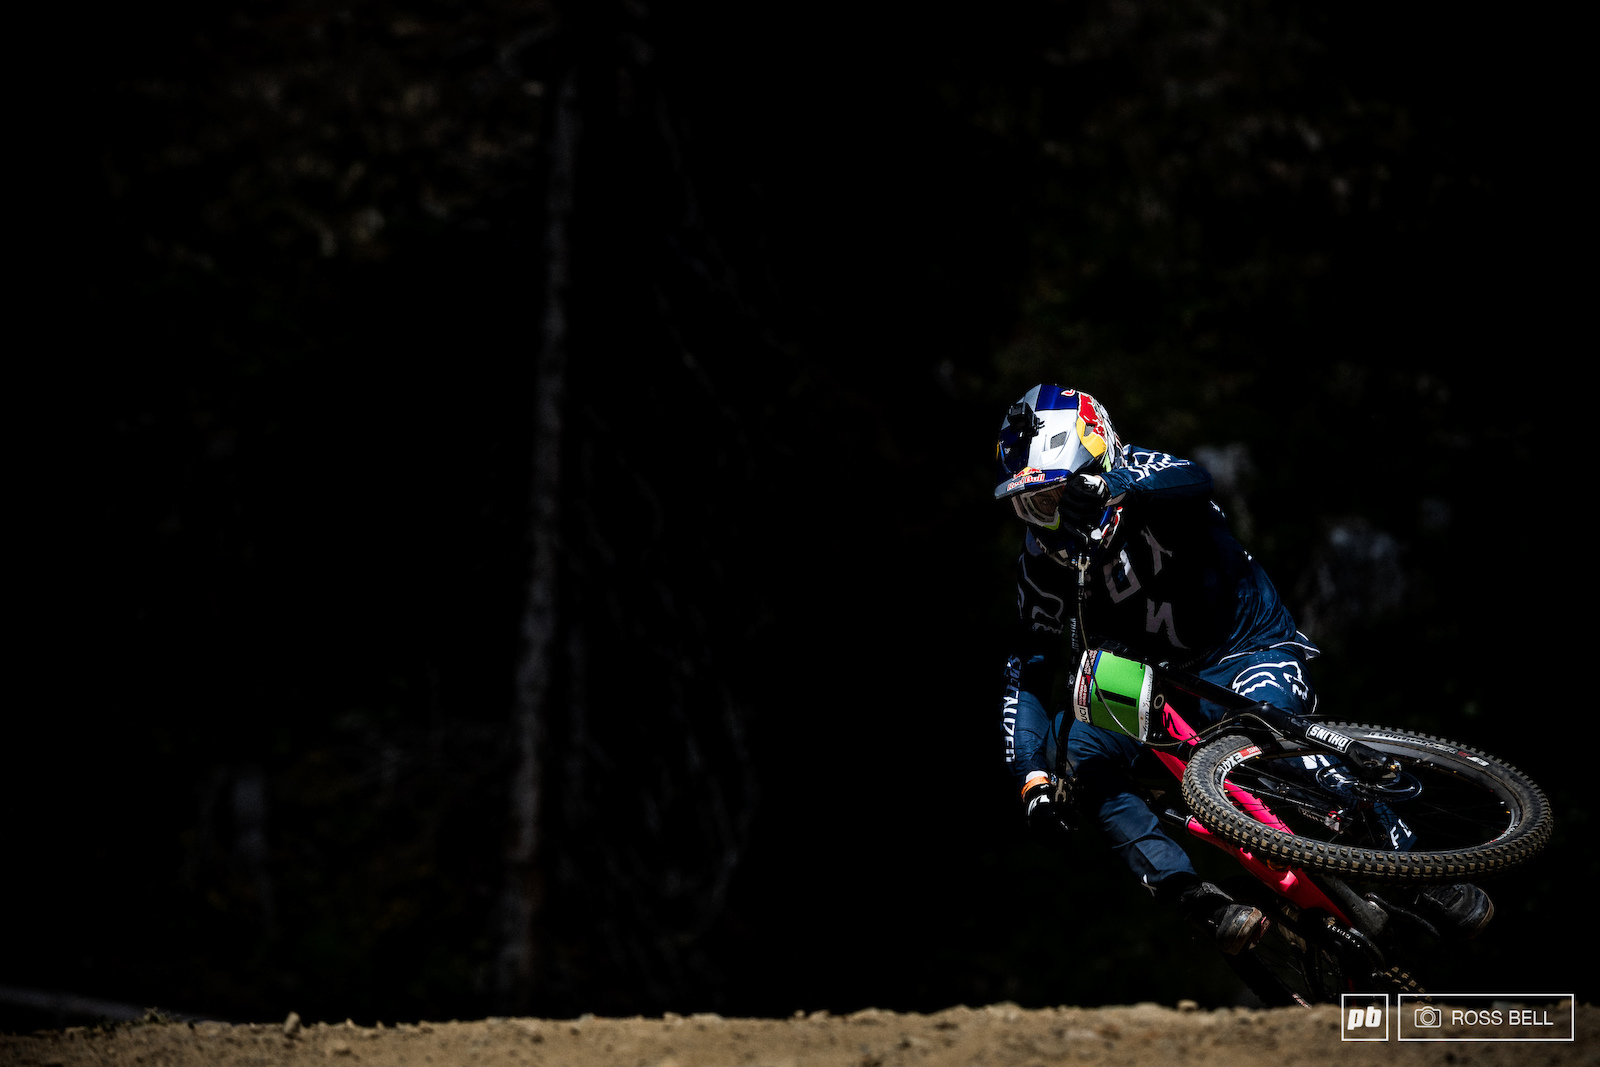 Finn Iles means business here scrubbing hard to maximise speed on the flat out track.